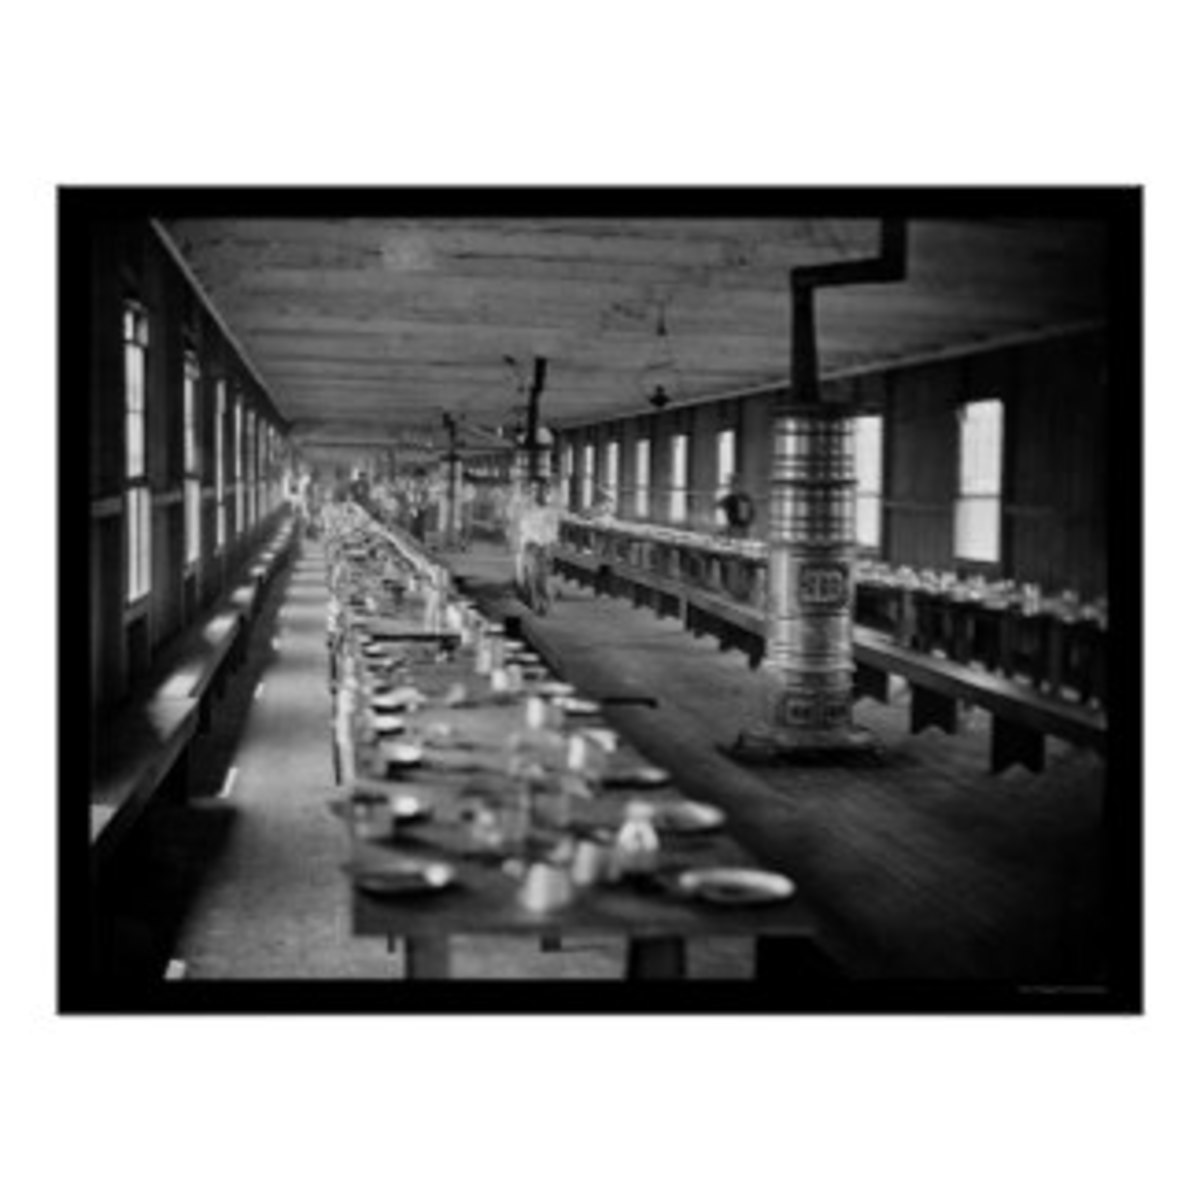 Civil War hospital mess hall in Washington D.C. Harewood Hospital 1865.